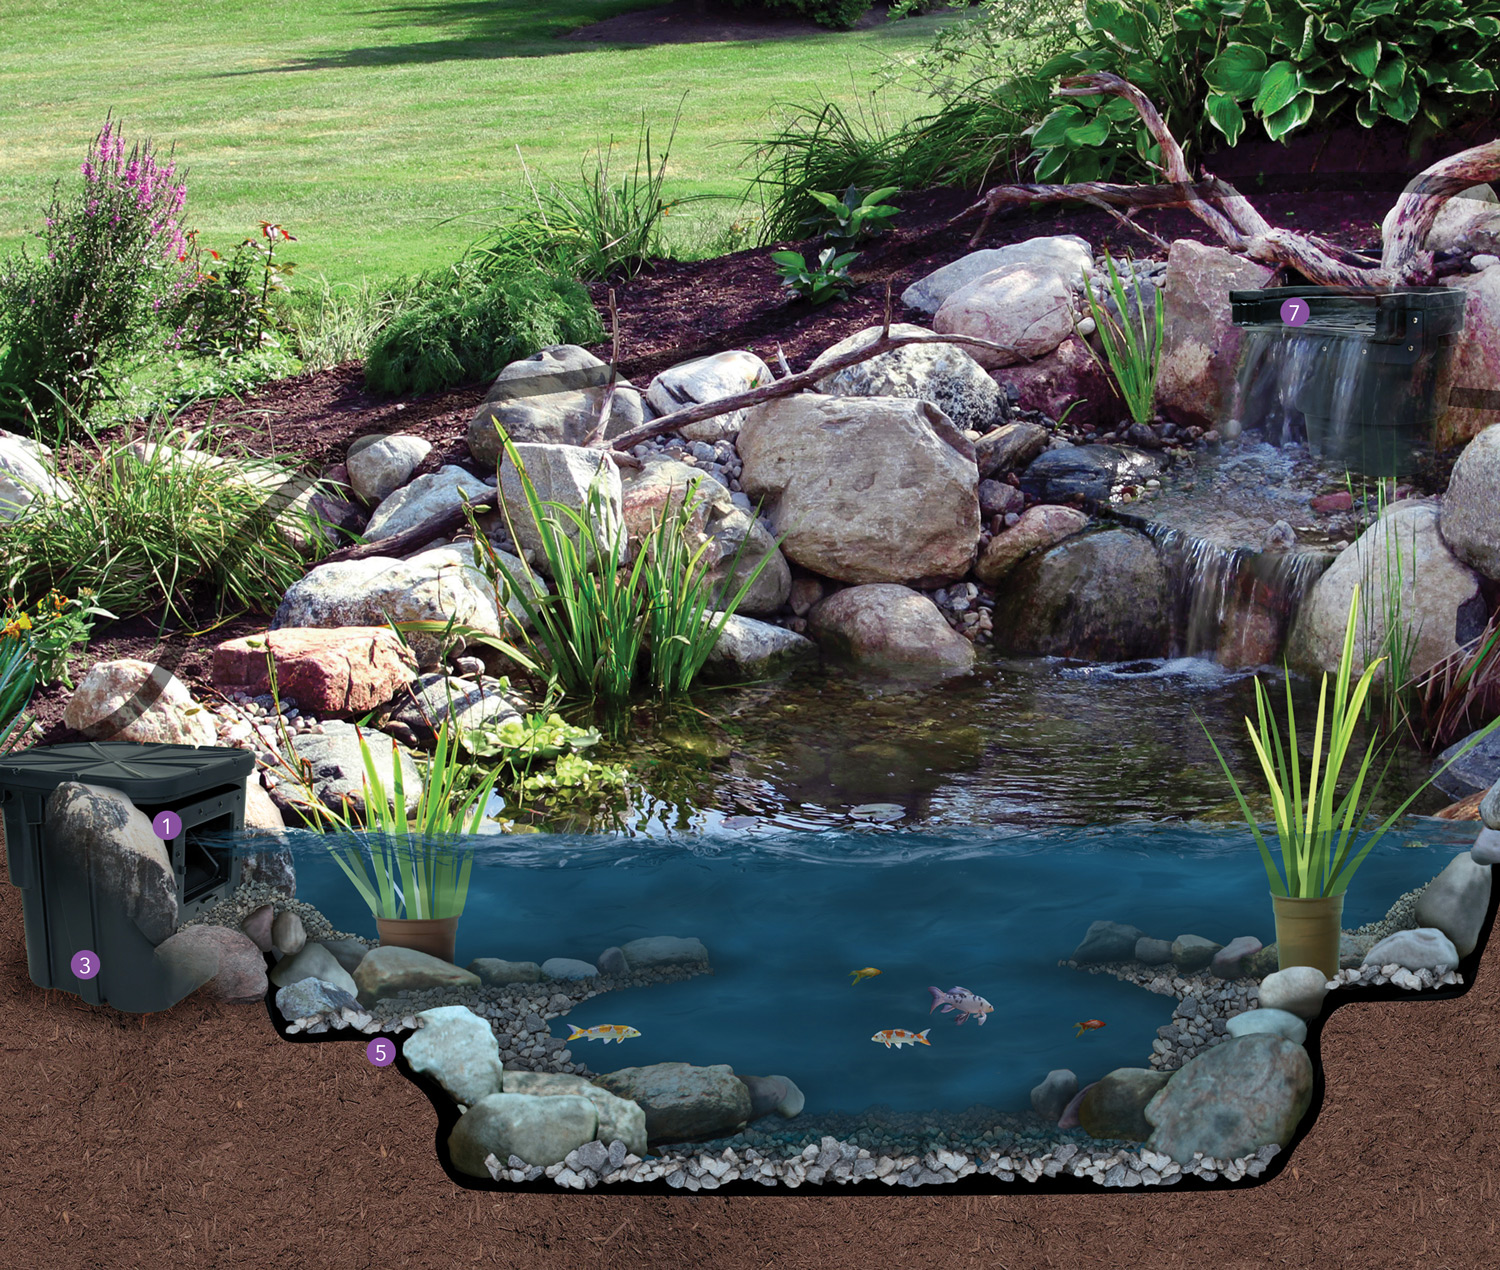 Water garden smartrain for Garden design kits